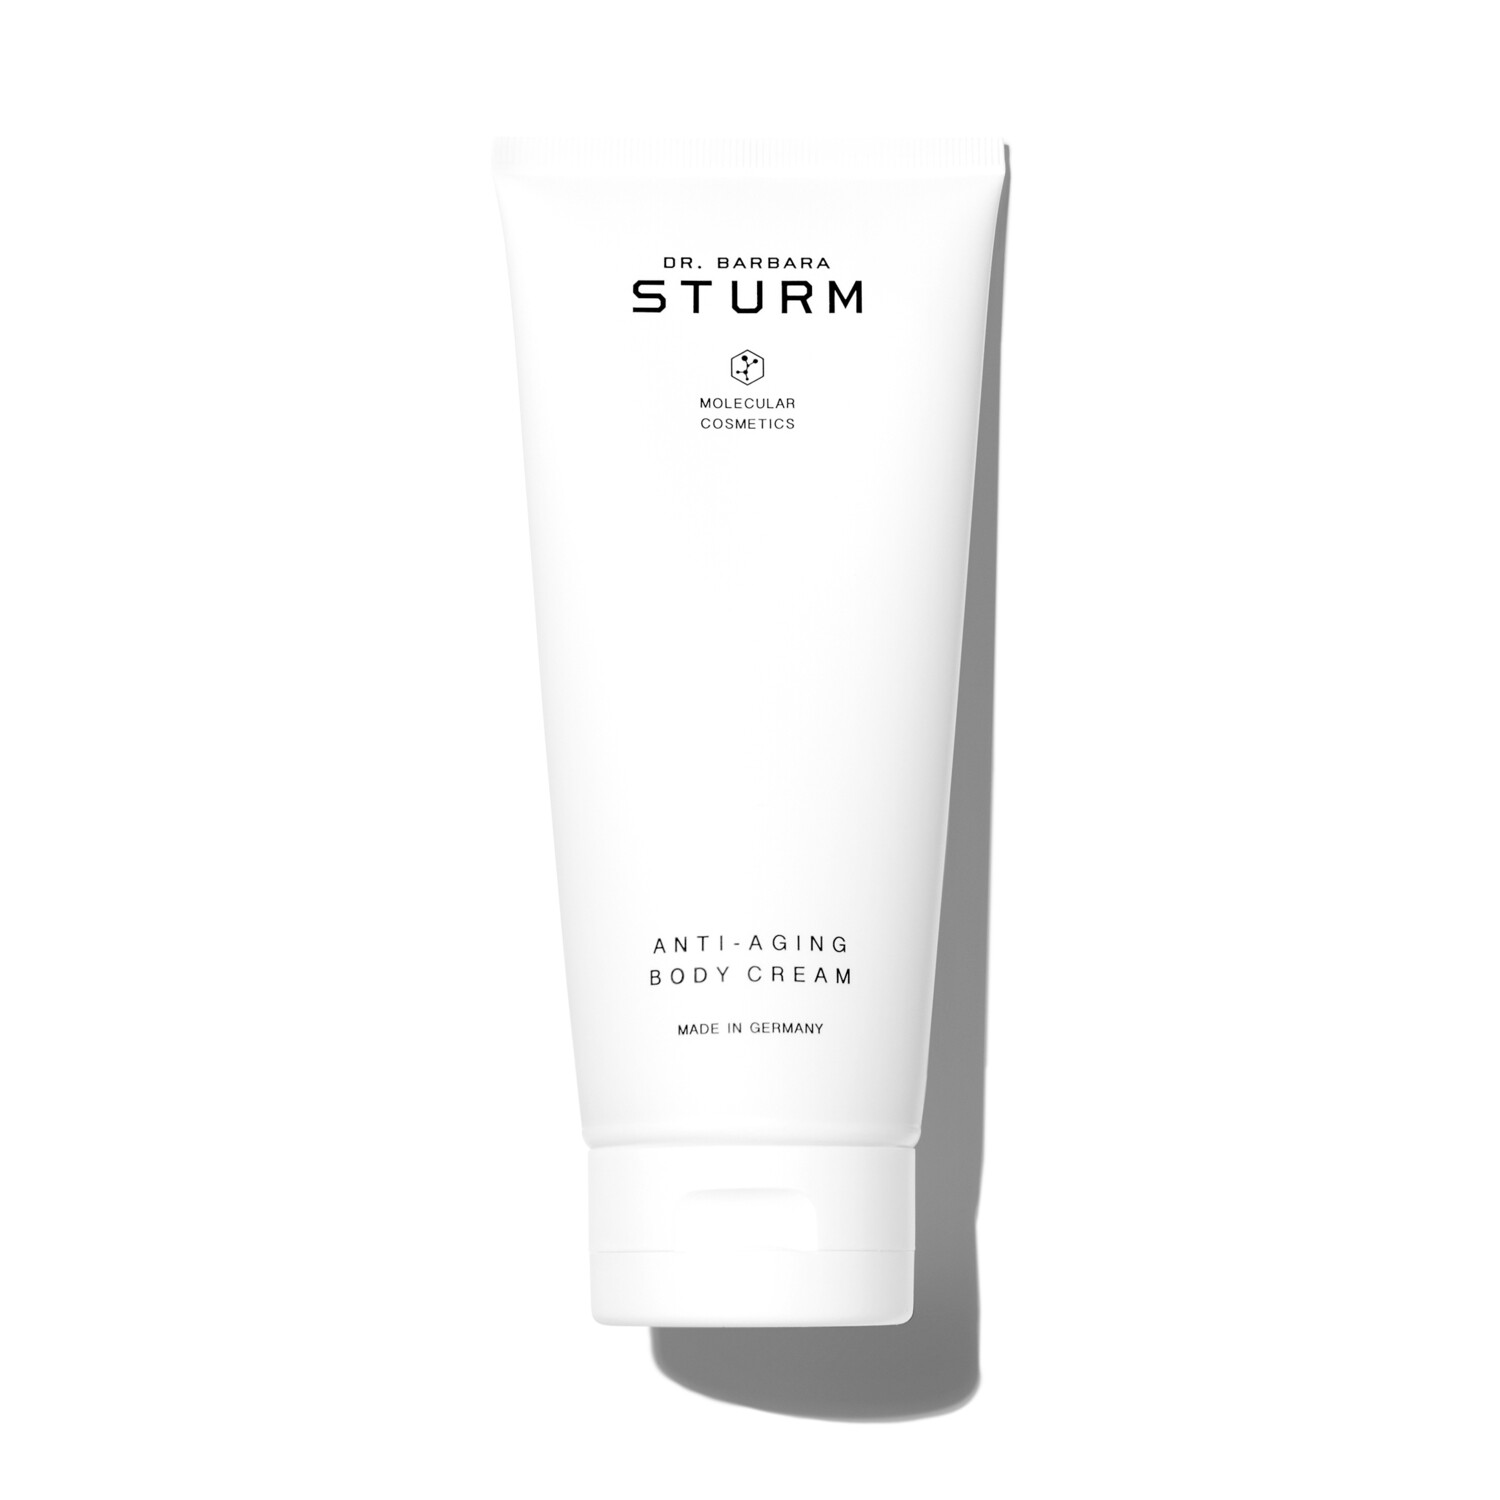 ANTI-AGING BODY CREAM 200 ml